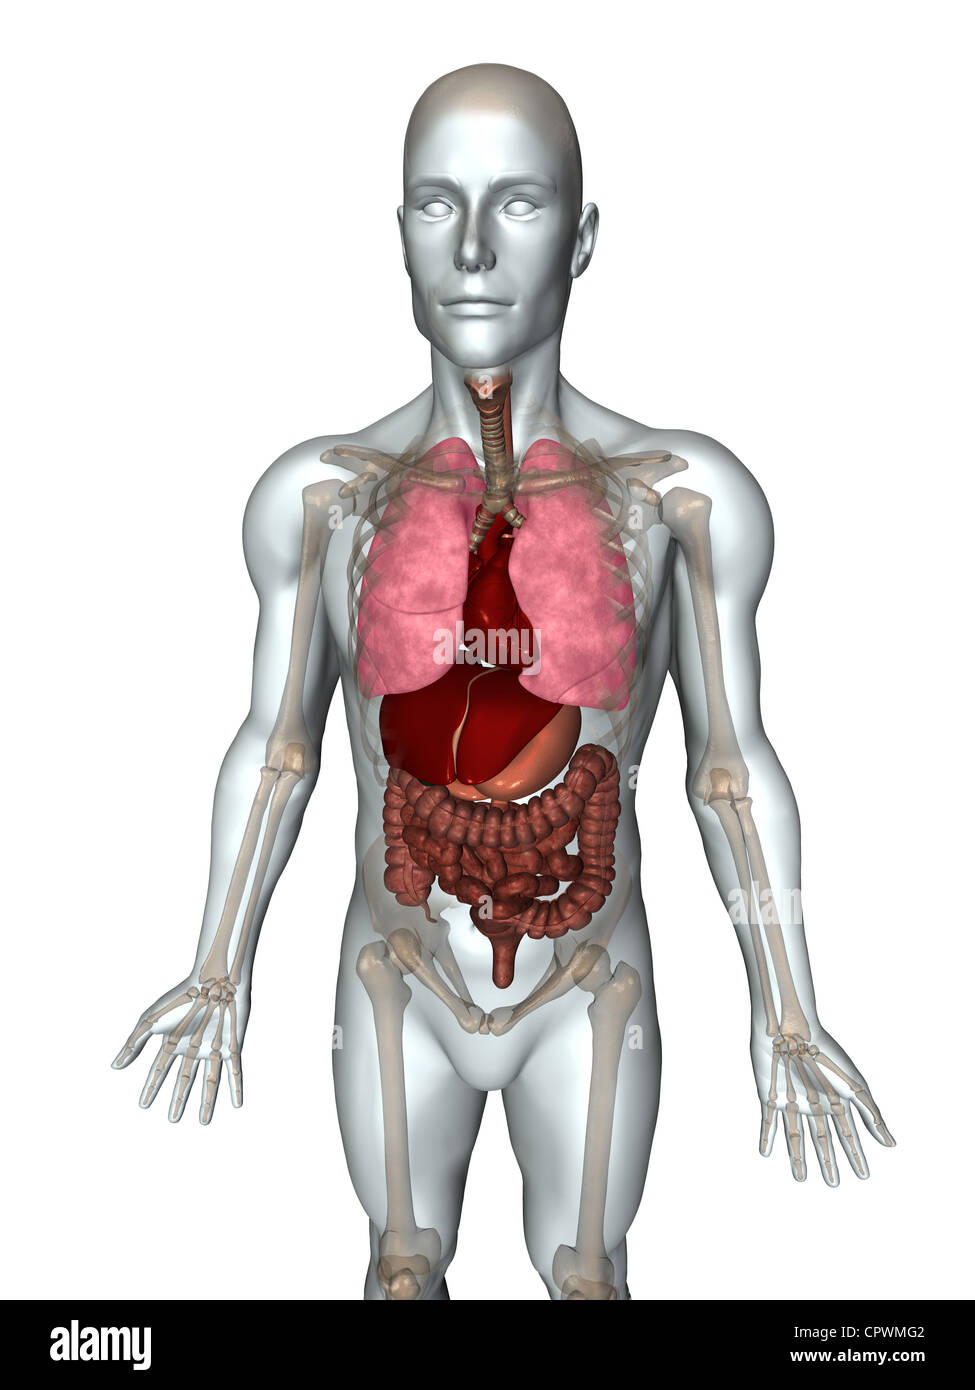 Anatomical Illustration Of The Human Body Showing The Major Organs